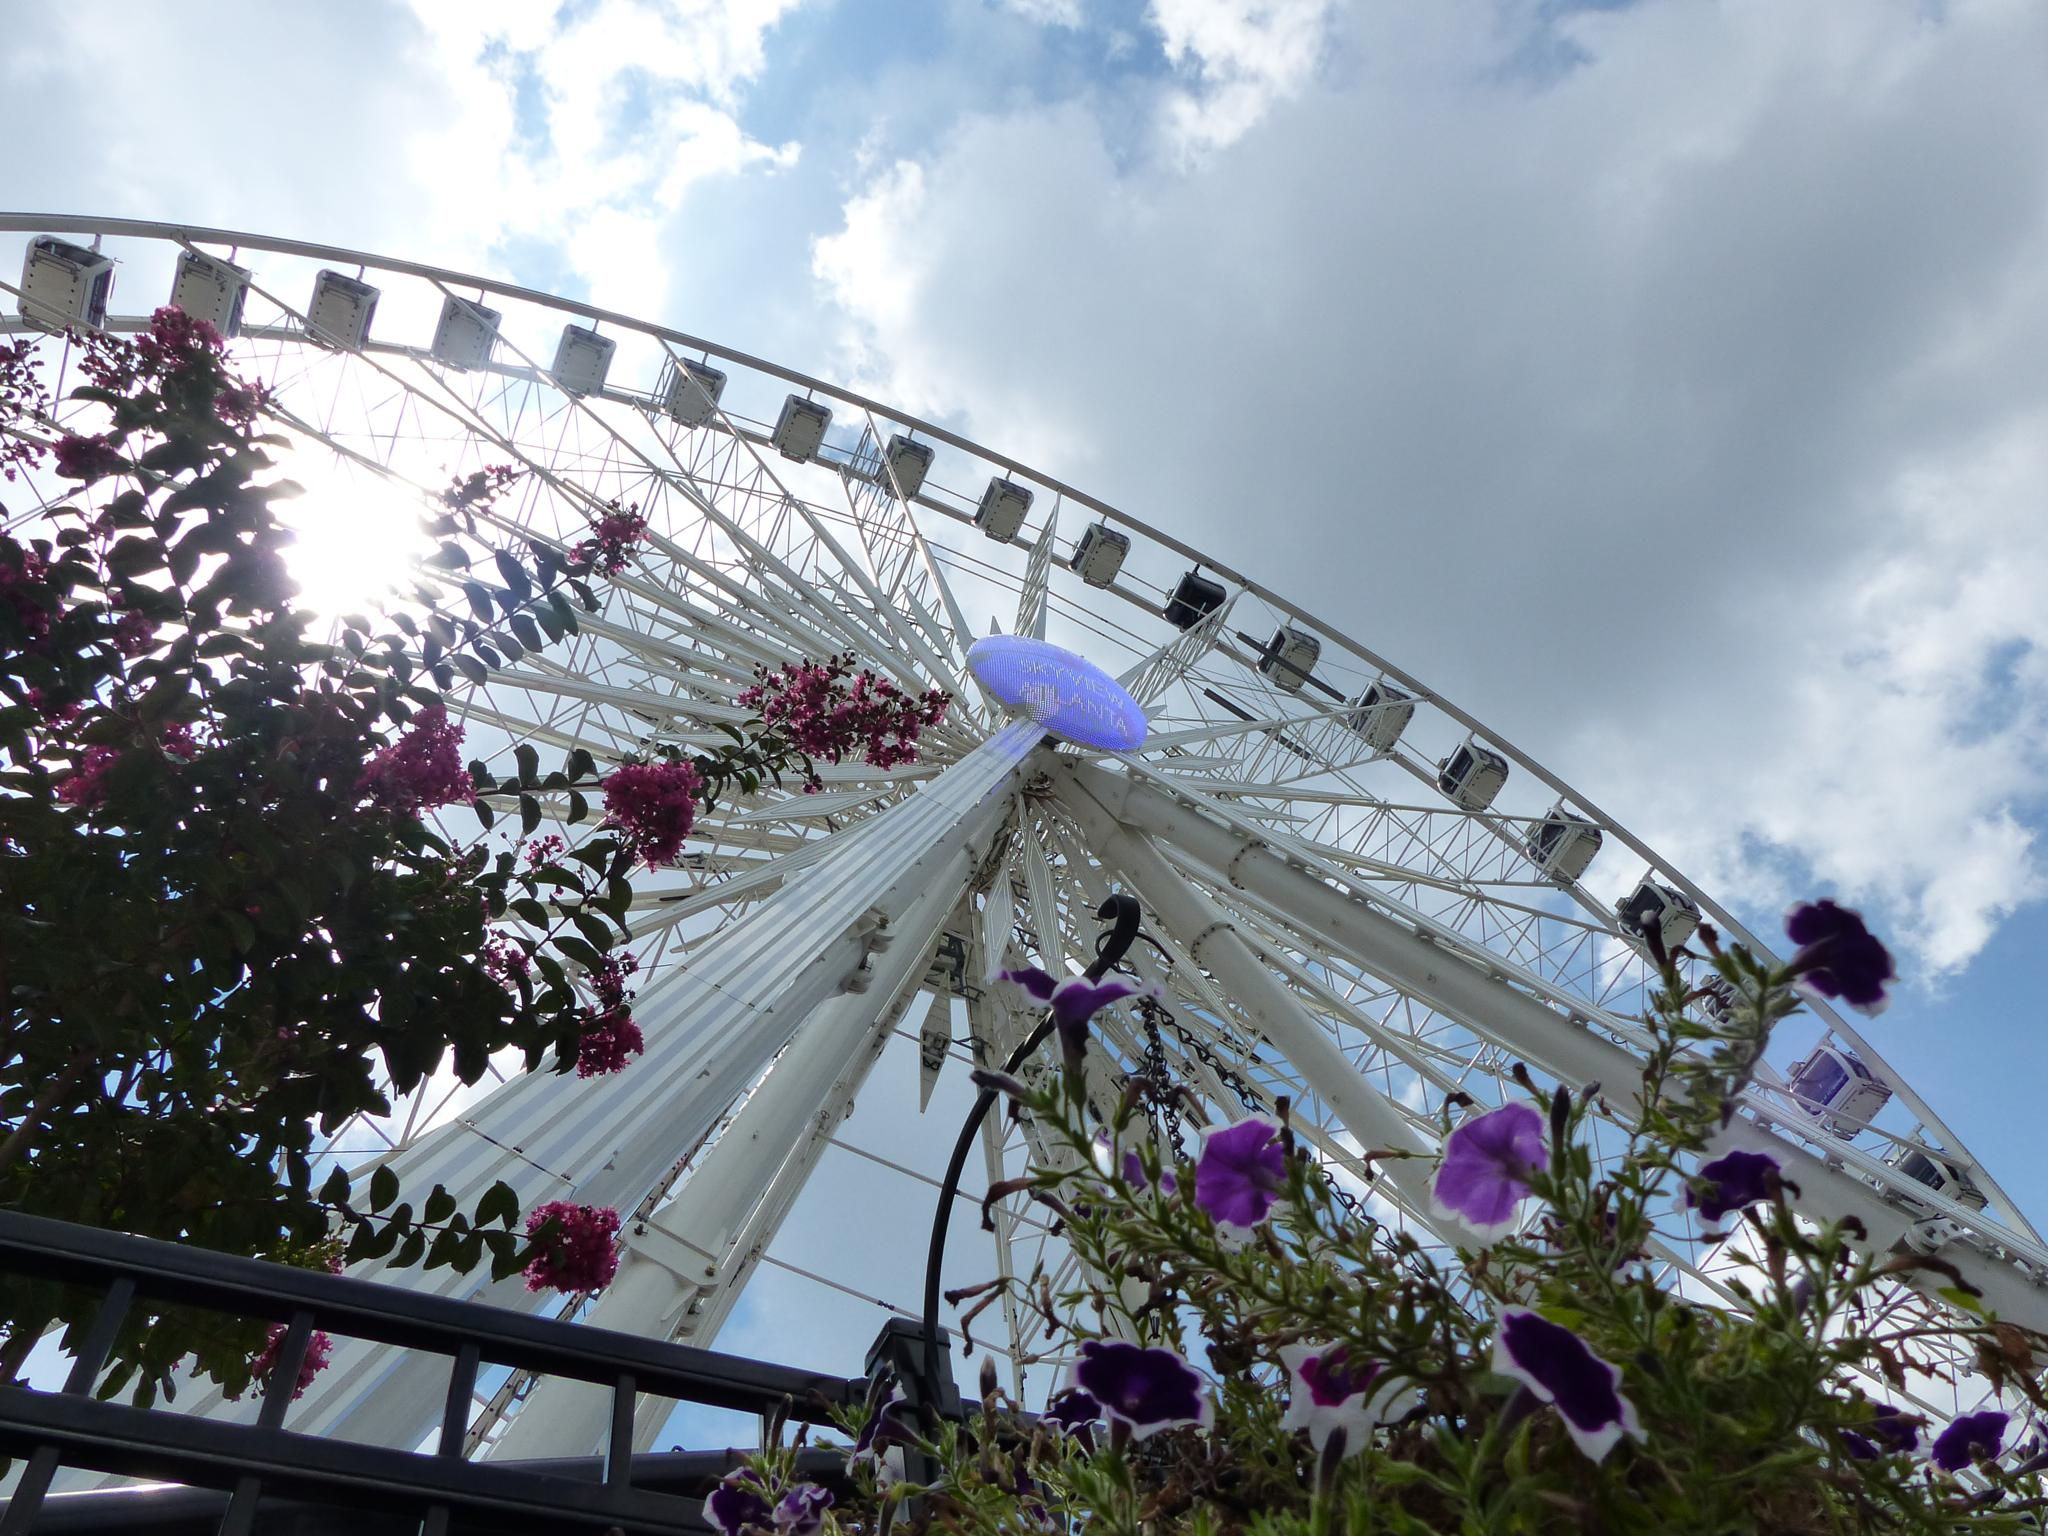 Ferris wheel, Olympia Parc, Atlanta by Lars M.